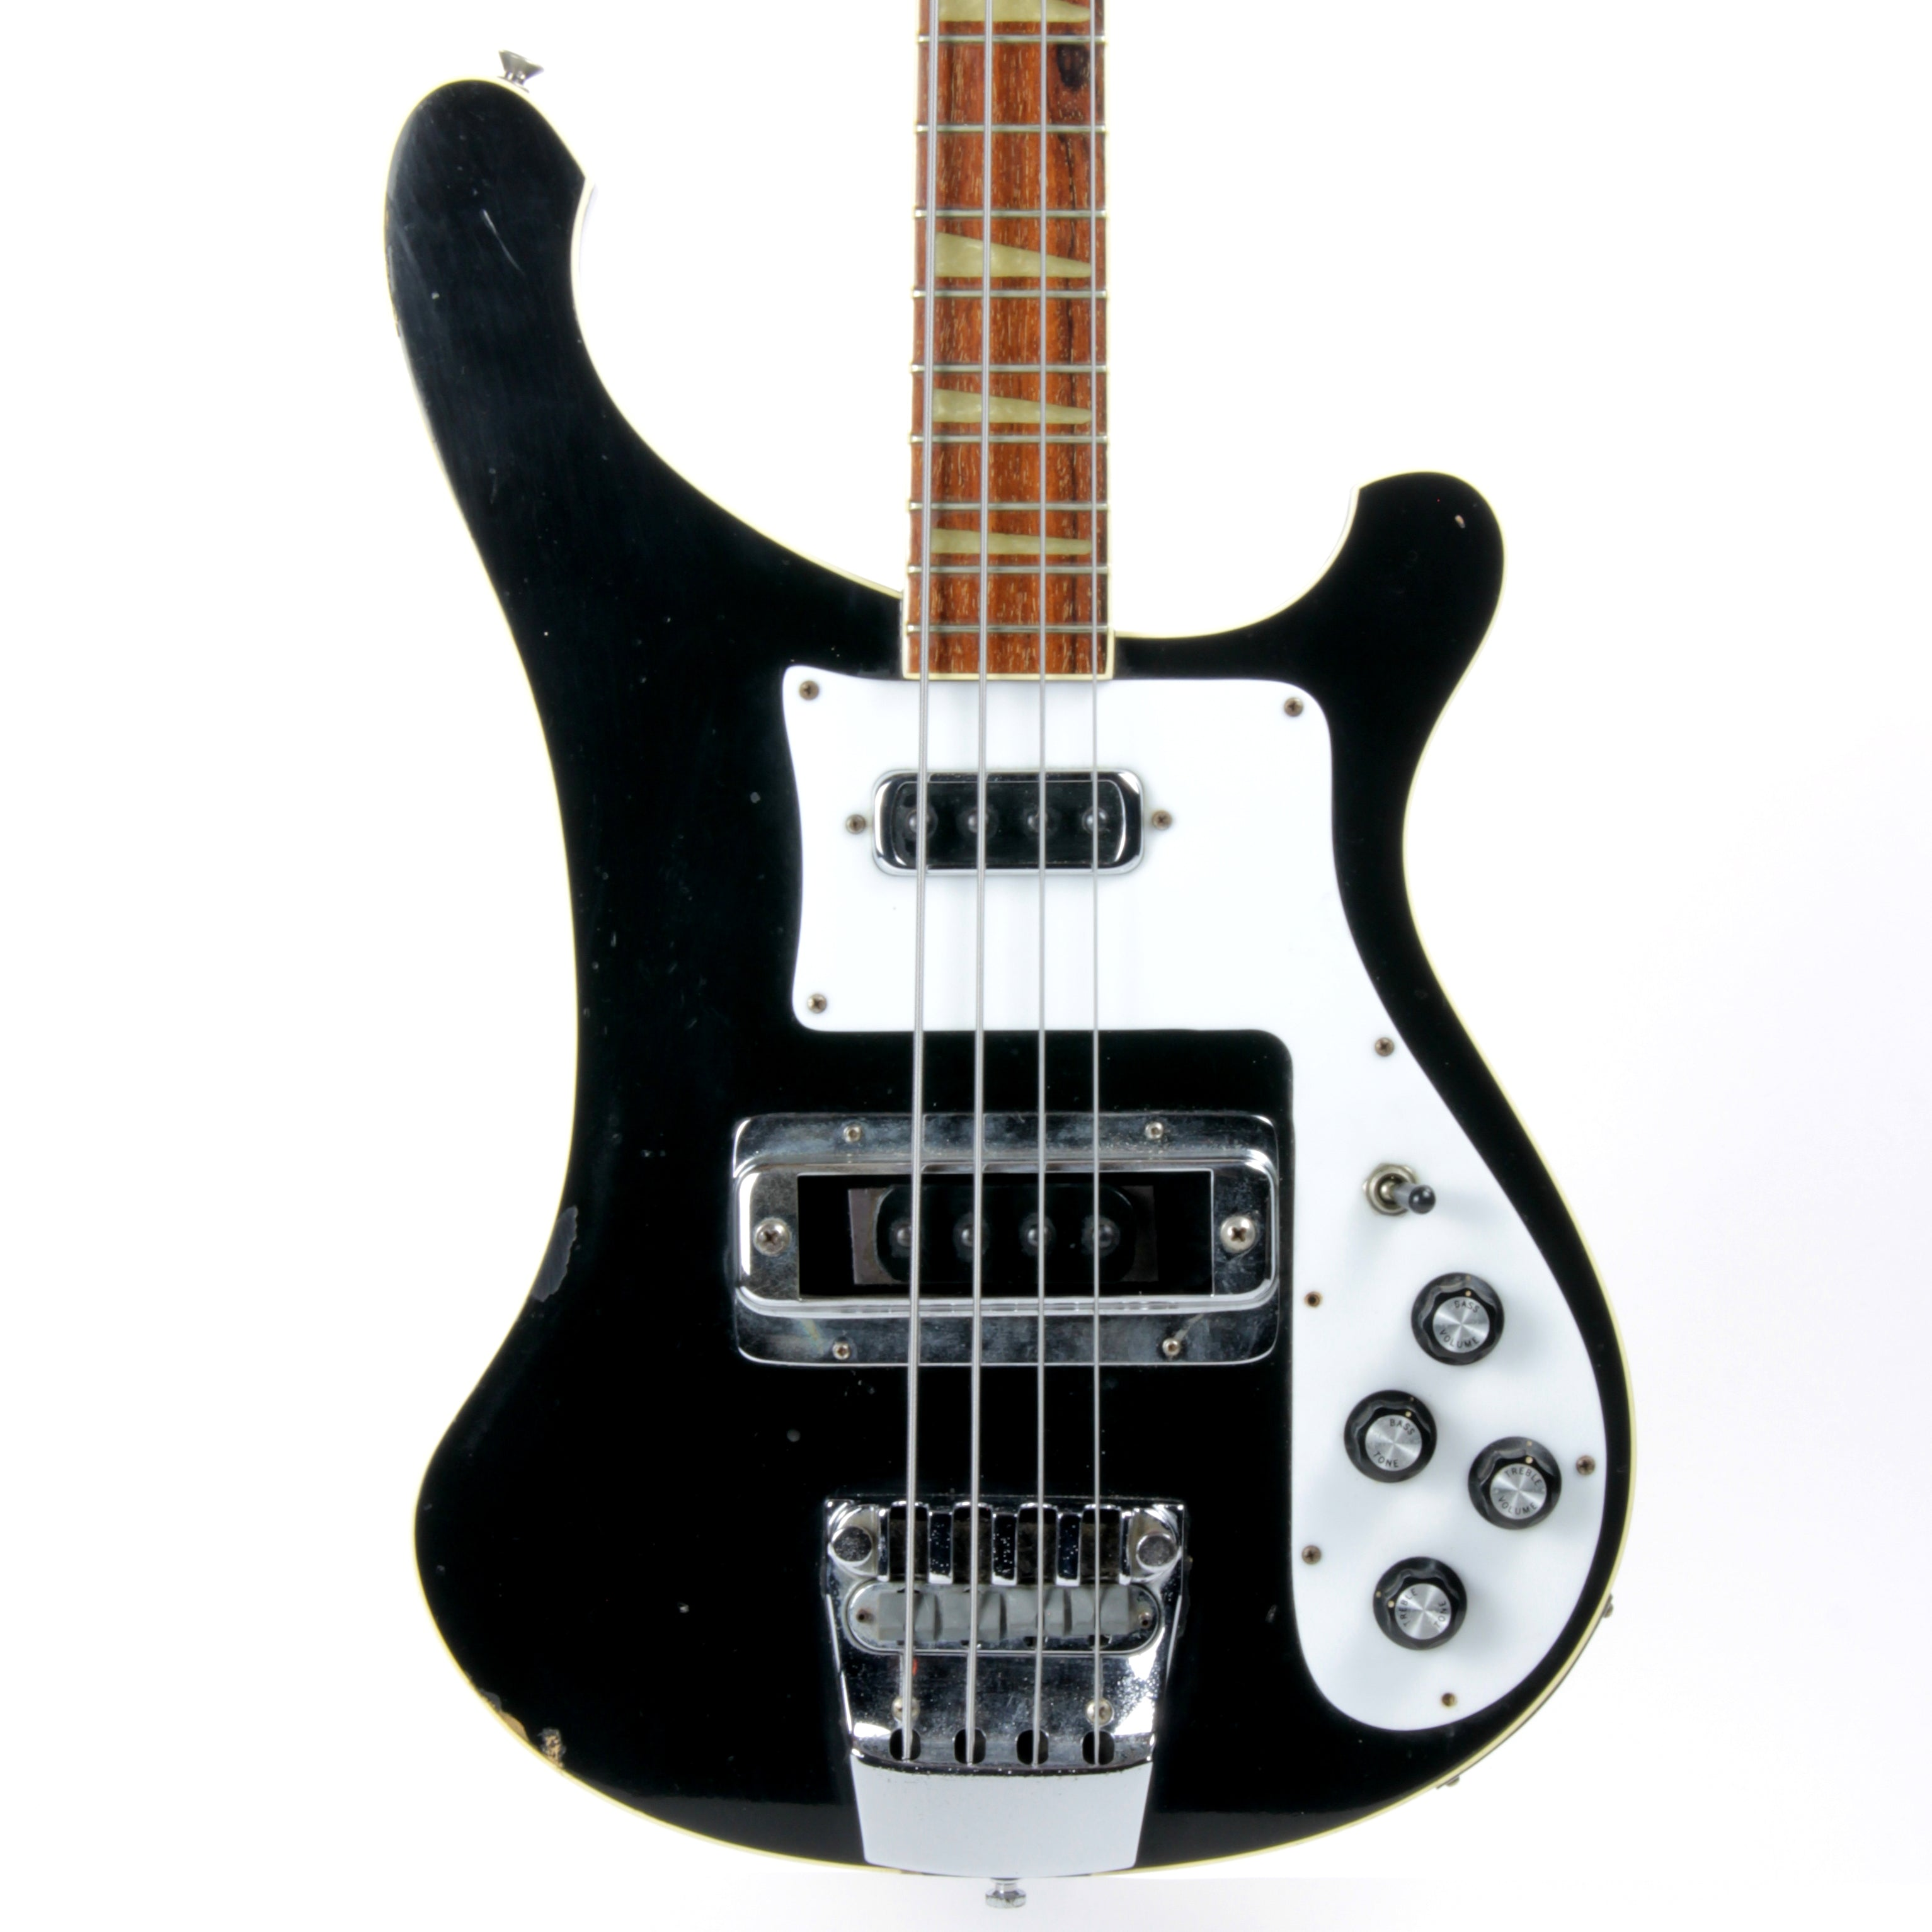 1978 Rickenbacker 4001 Jetglo Black Electric Bass Guitar! Vintage 1970's Ric